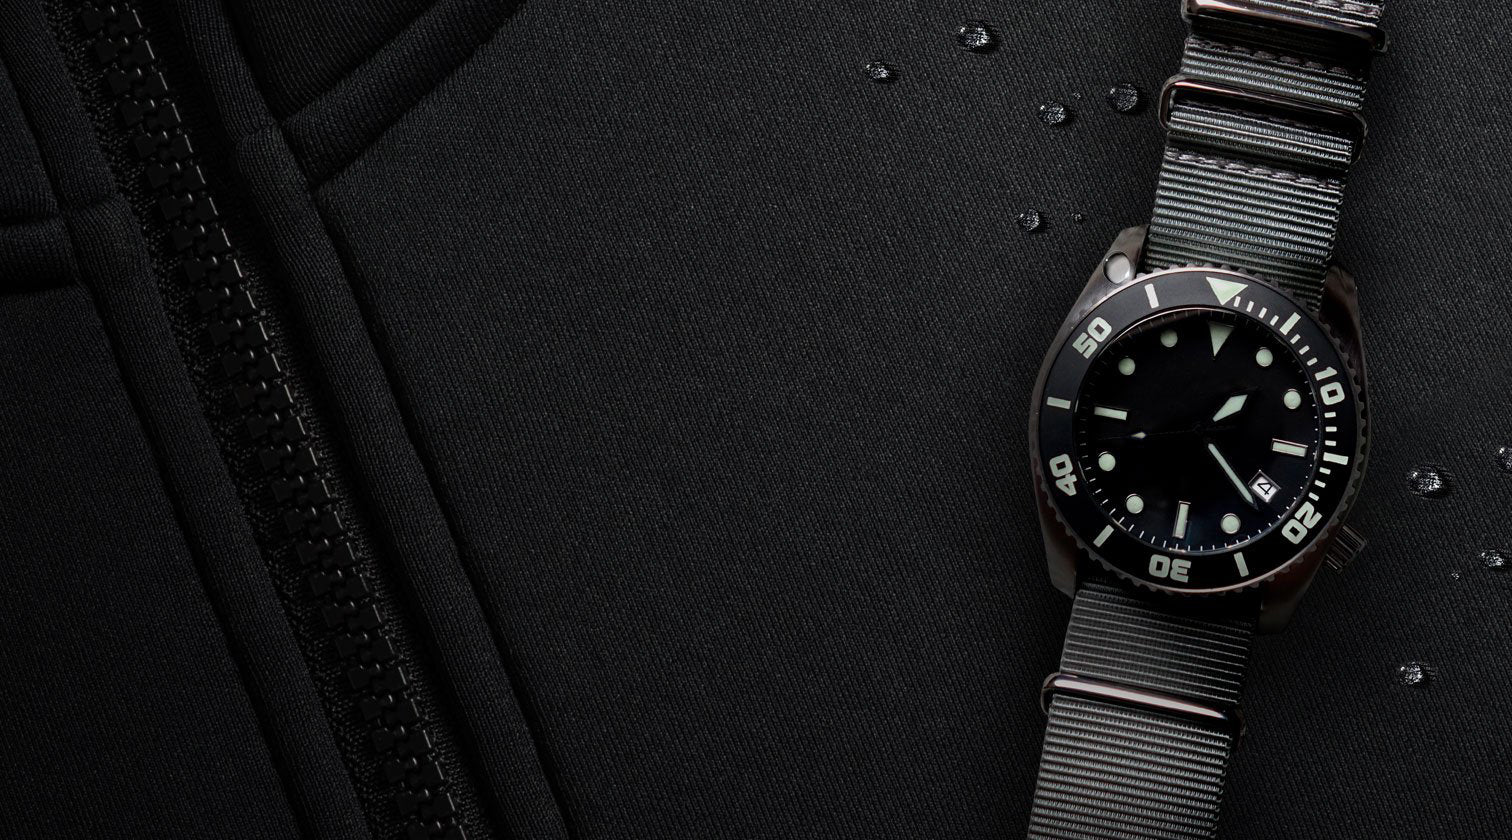 Enoksen - Blog Post - About The Deep Dive - Deep Dive Watch On Wet Suit Image